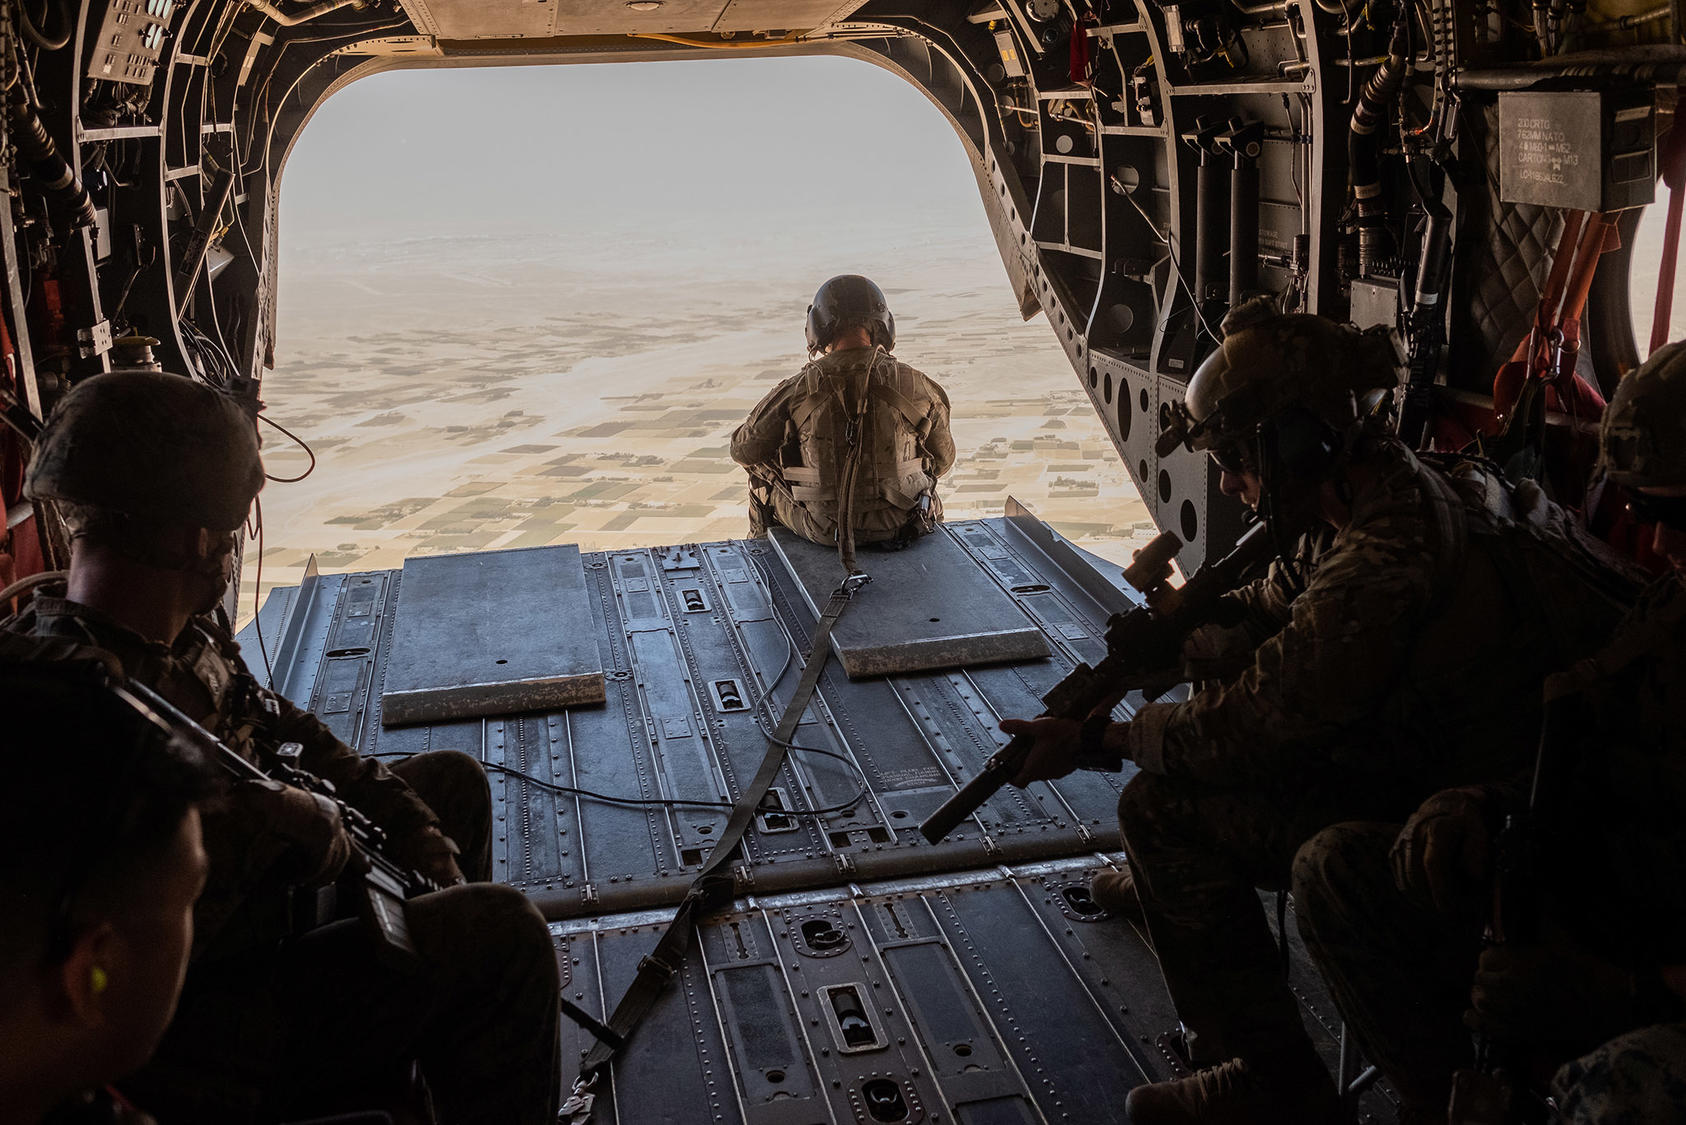 U.S. troops in a helicopter above Helmand Province in Afghanistan Sept. 26, 2019. (Jim Huylebroek/The New York Times)